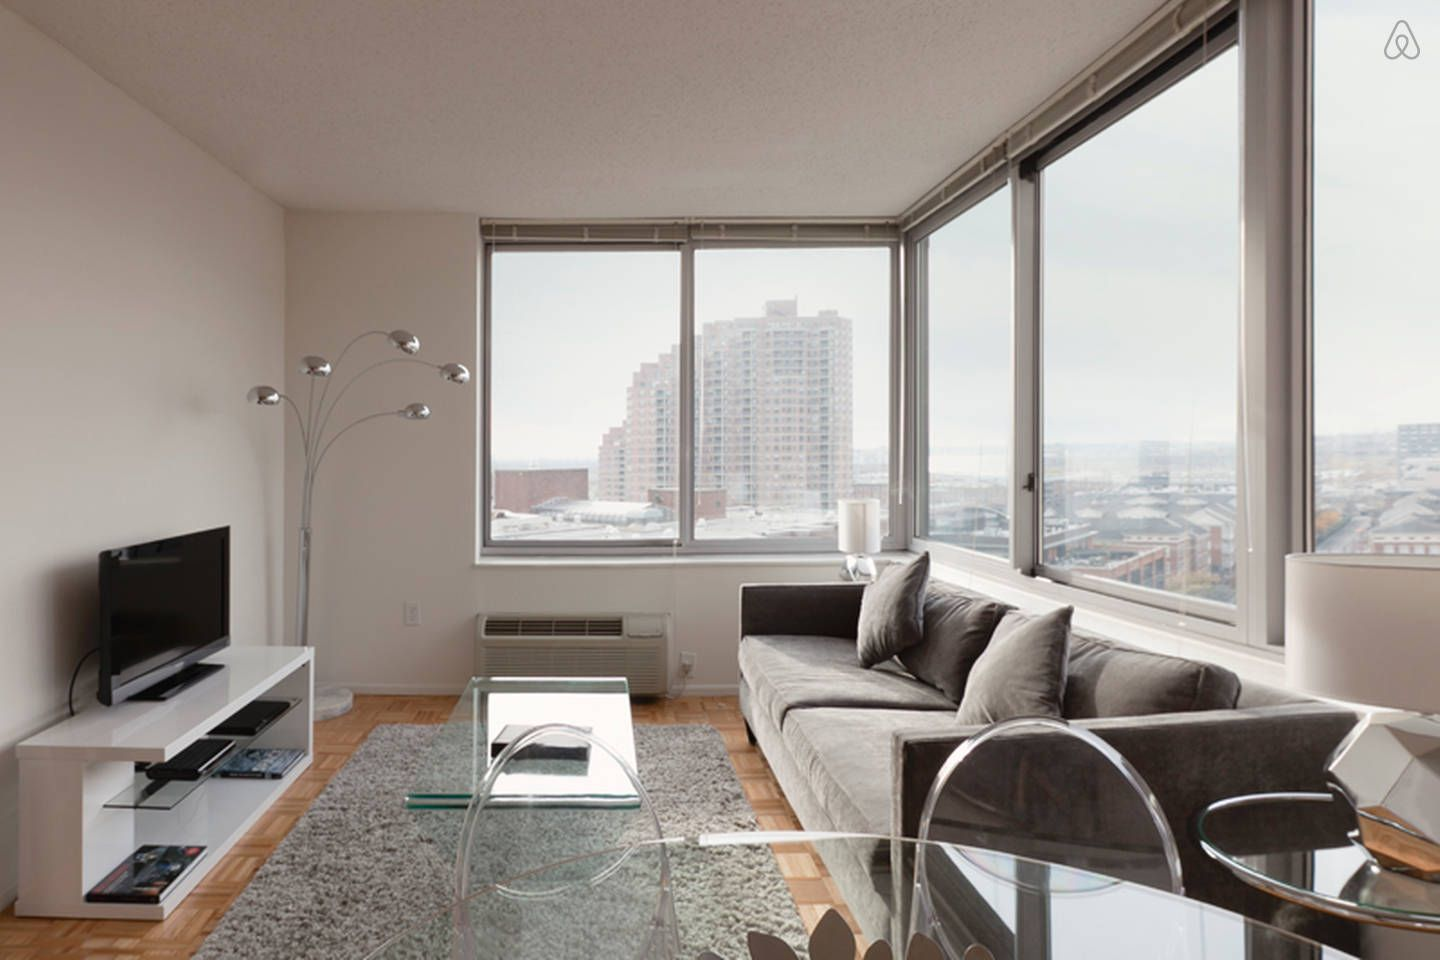 Sky City @ The River 2 BR Standard - vacation rental in Jersey City, New Jersey. View more: #JerseyCityNewJerseyVacationRentals